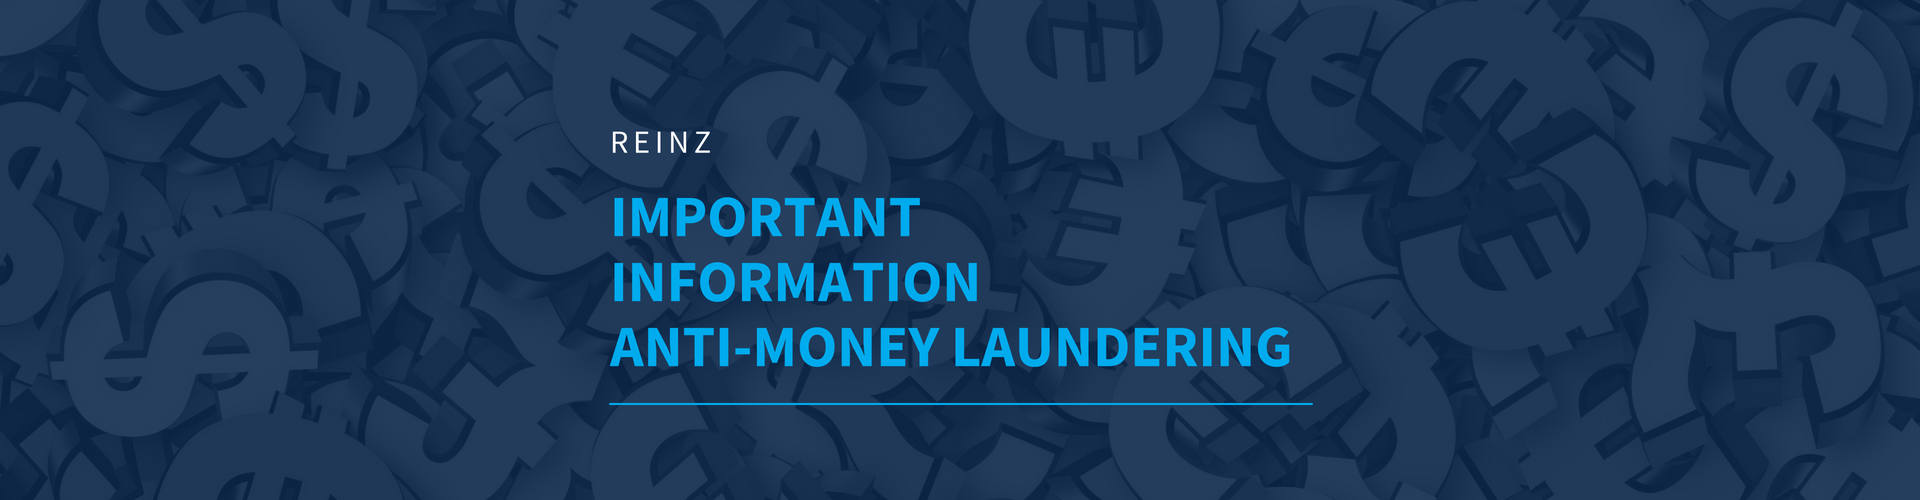 Important Information - Anti-Money Laundering